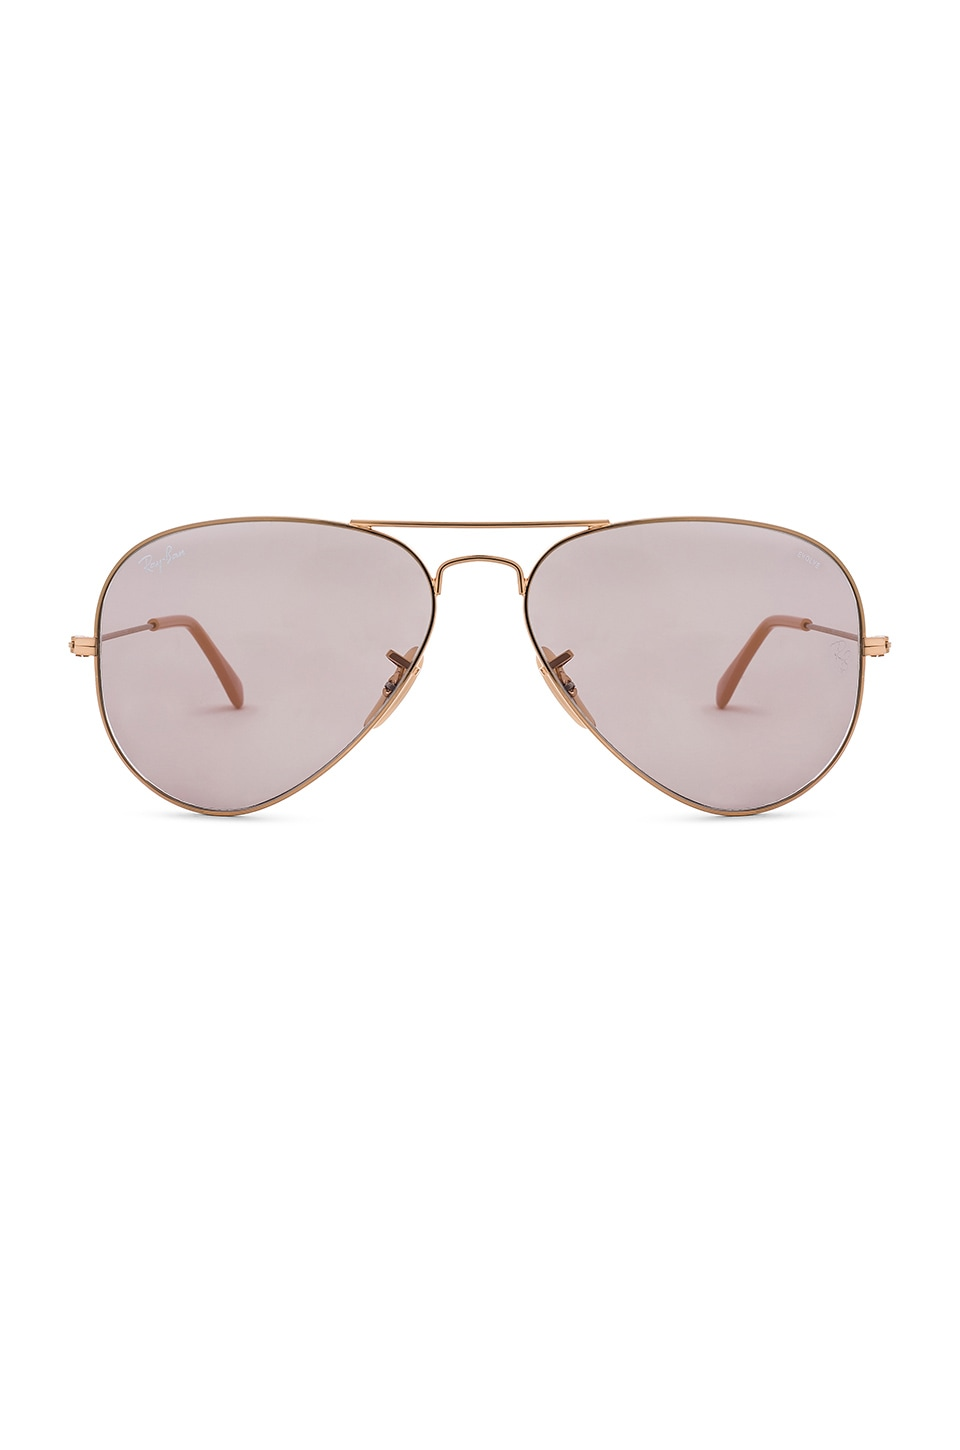 Ray-Ban LUNETTES DE SOLEIL AVIATOR EVOLVE